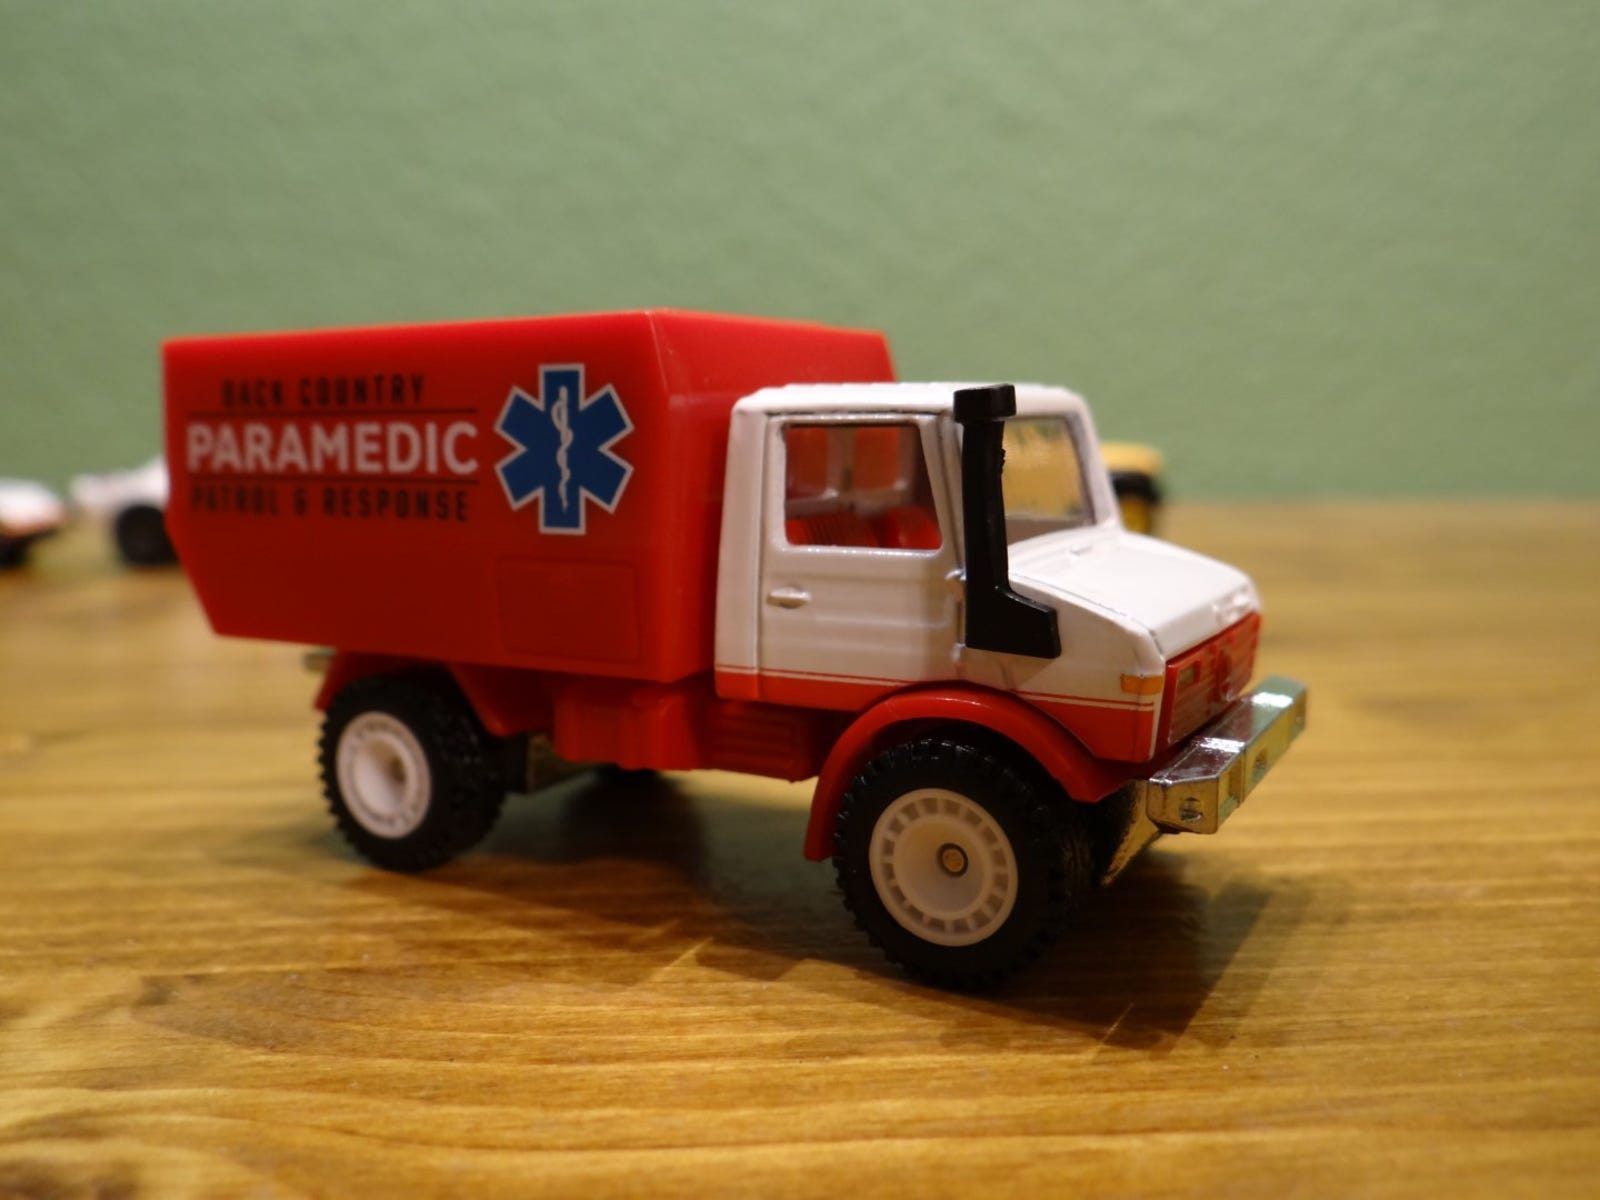 The Unimog is a little plain, but the Paramedic tampos are unique.